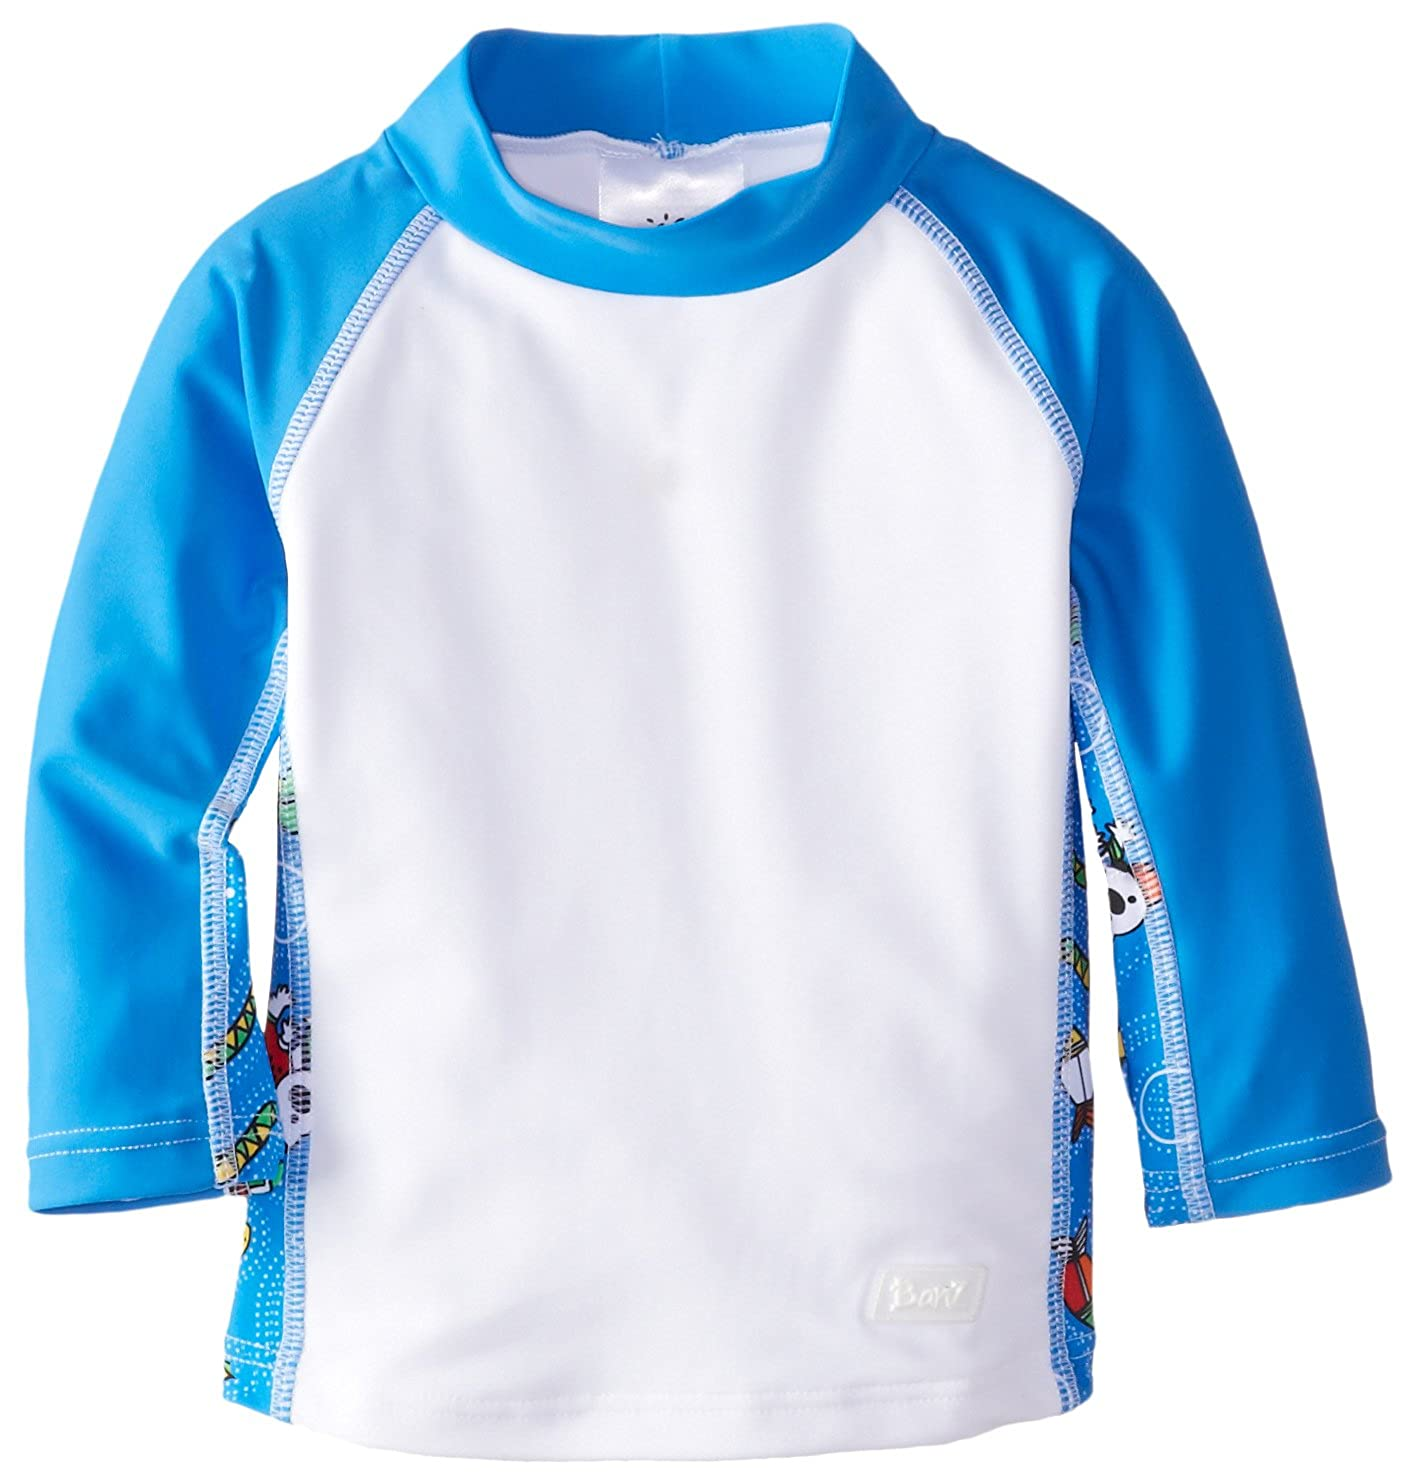 Baby Banz baby-boys Baby Long Sleeve Loose Fit Rash Top Baby Banz Baby Apparel S13RL-FS